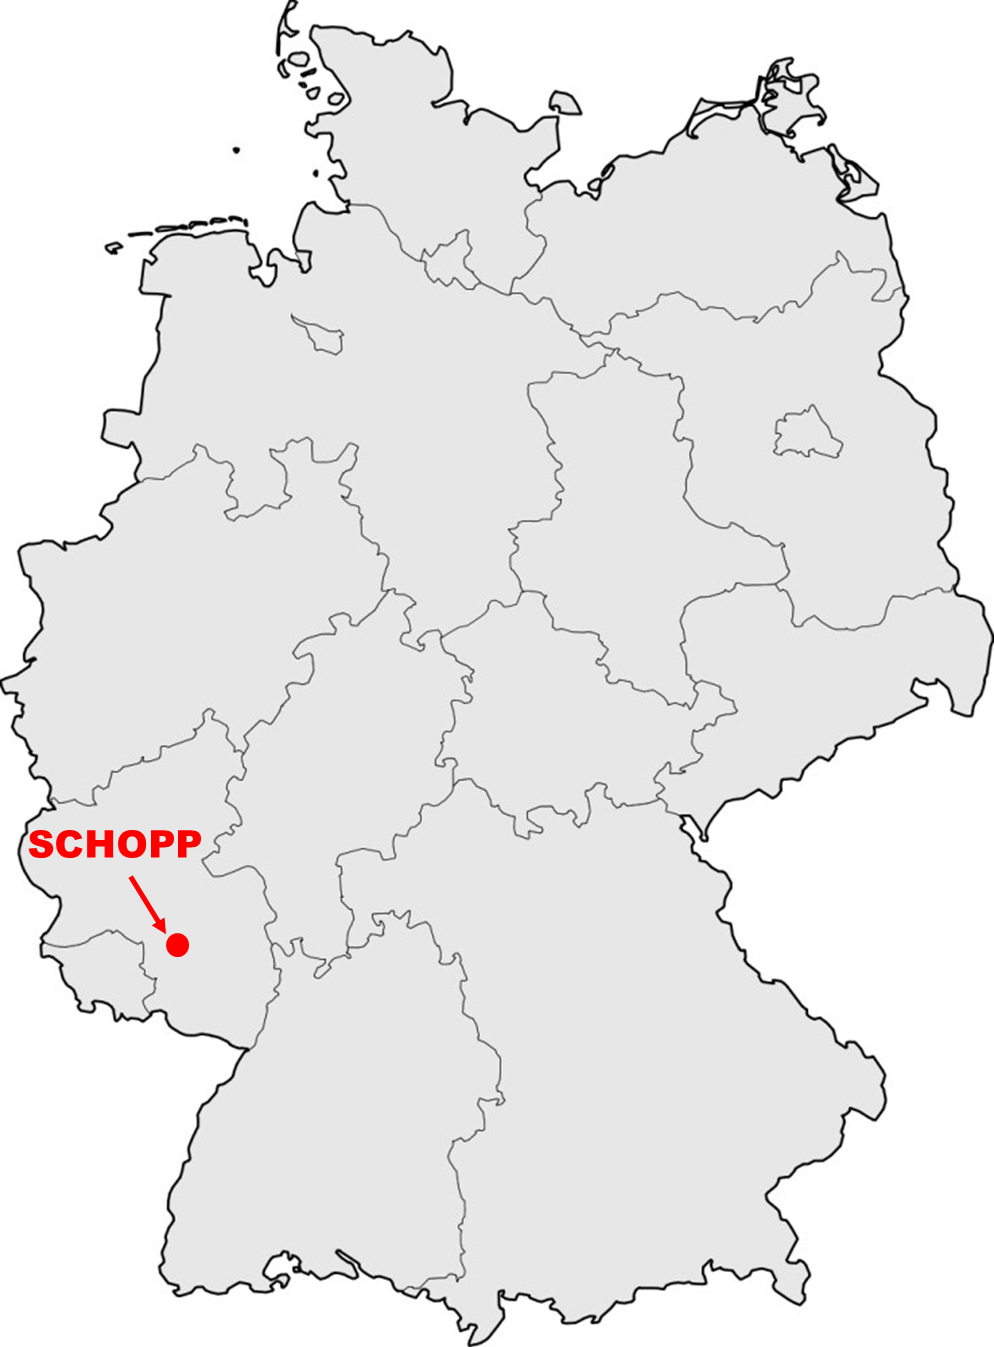 Schopp-Germany